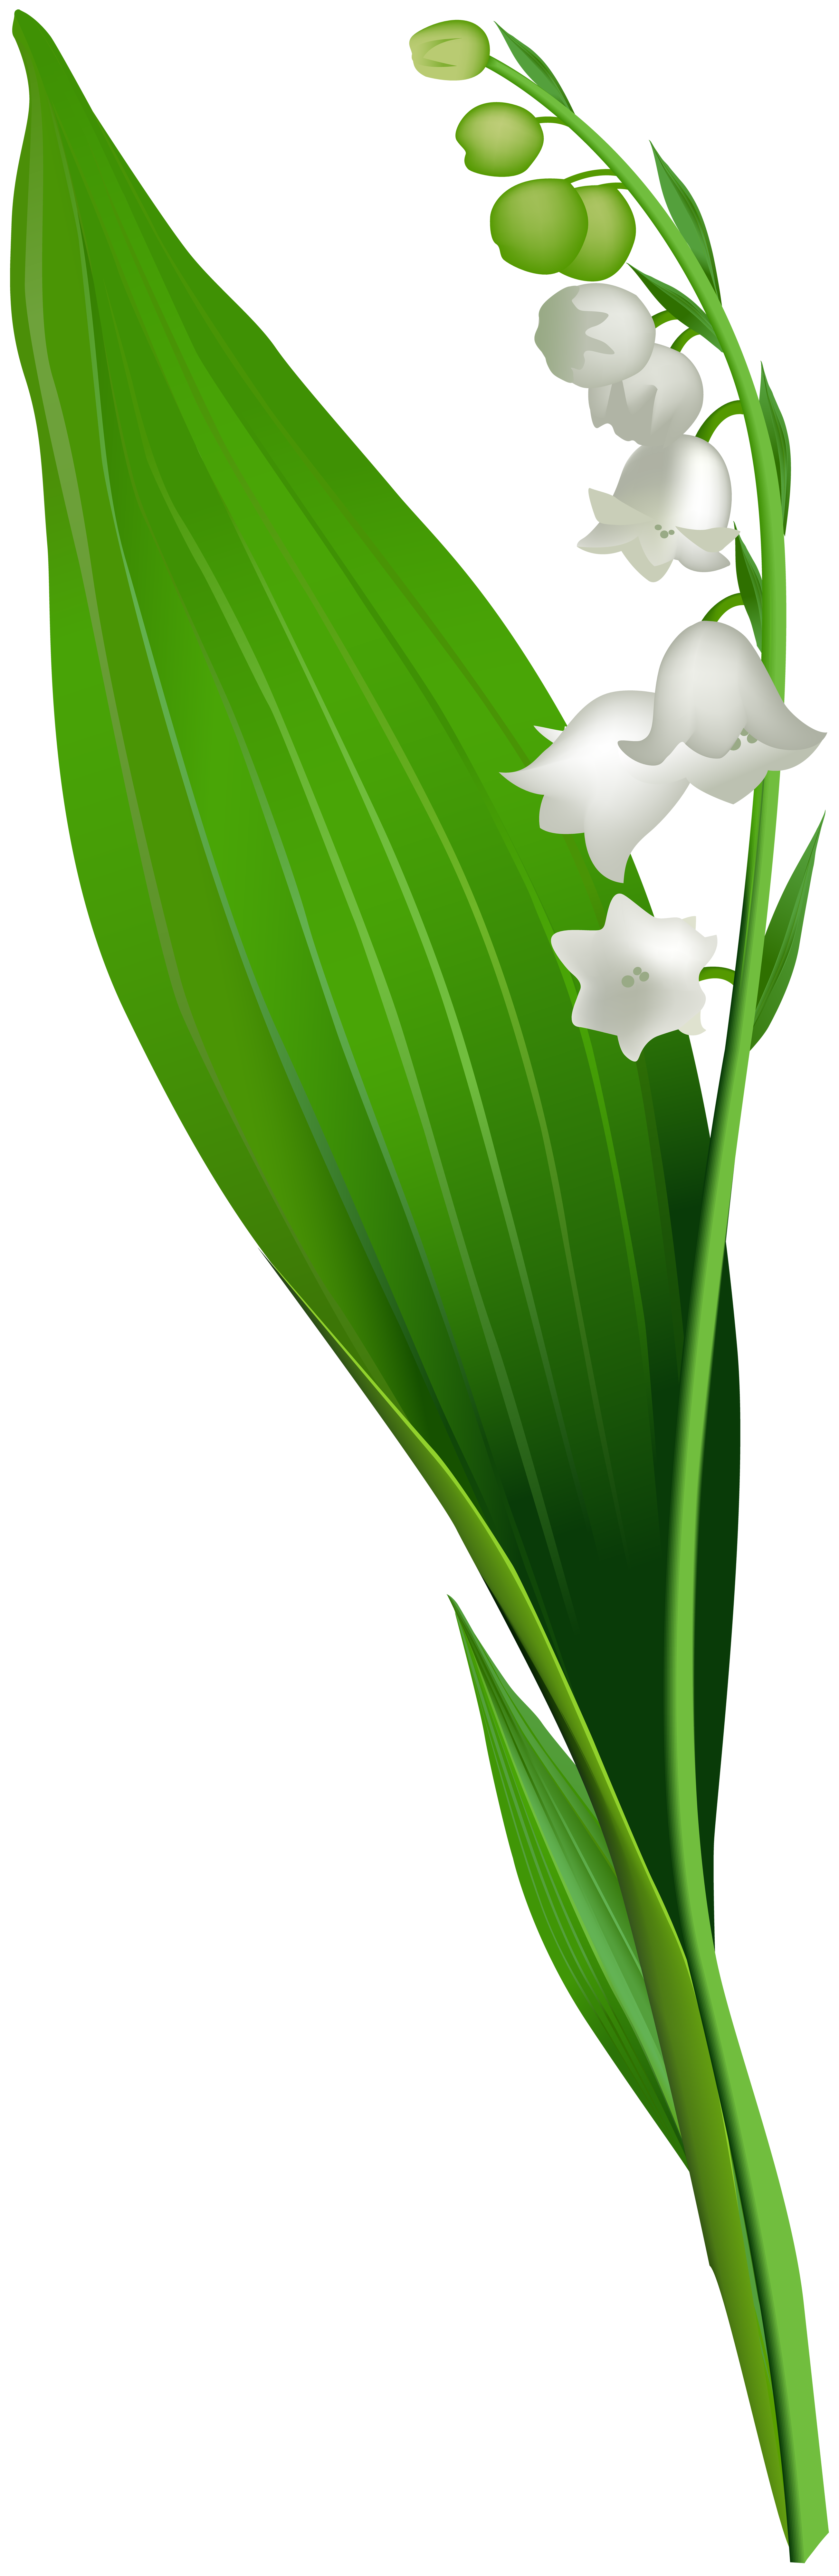 Lilly of the valley clipart vector freeuse download Lily of the valley clipart clipart images gallery for free download ... vector freeuse download